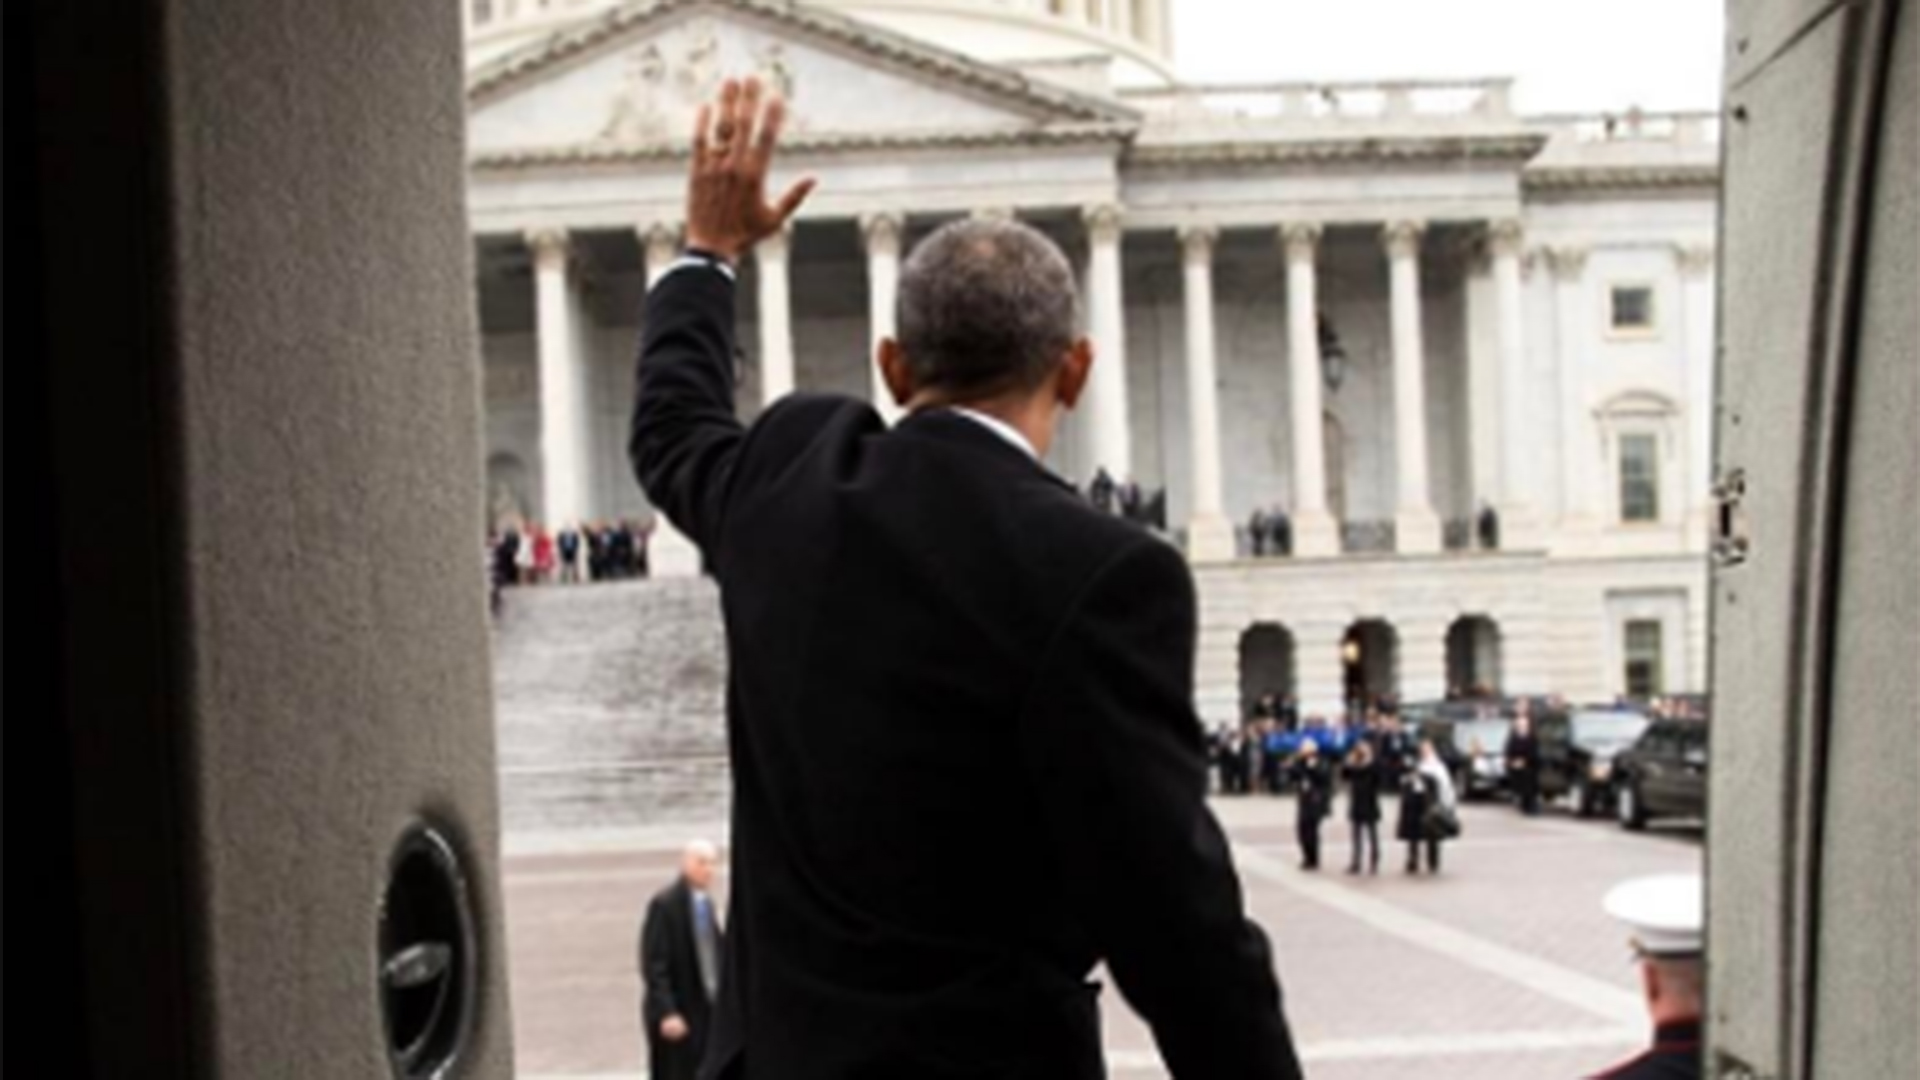 Pete Souza posts photos of President Obama's final moments at White House